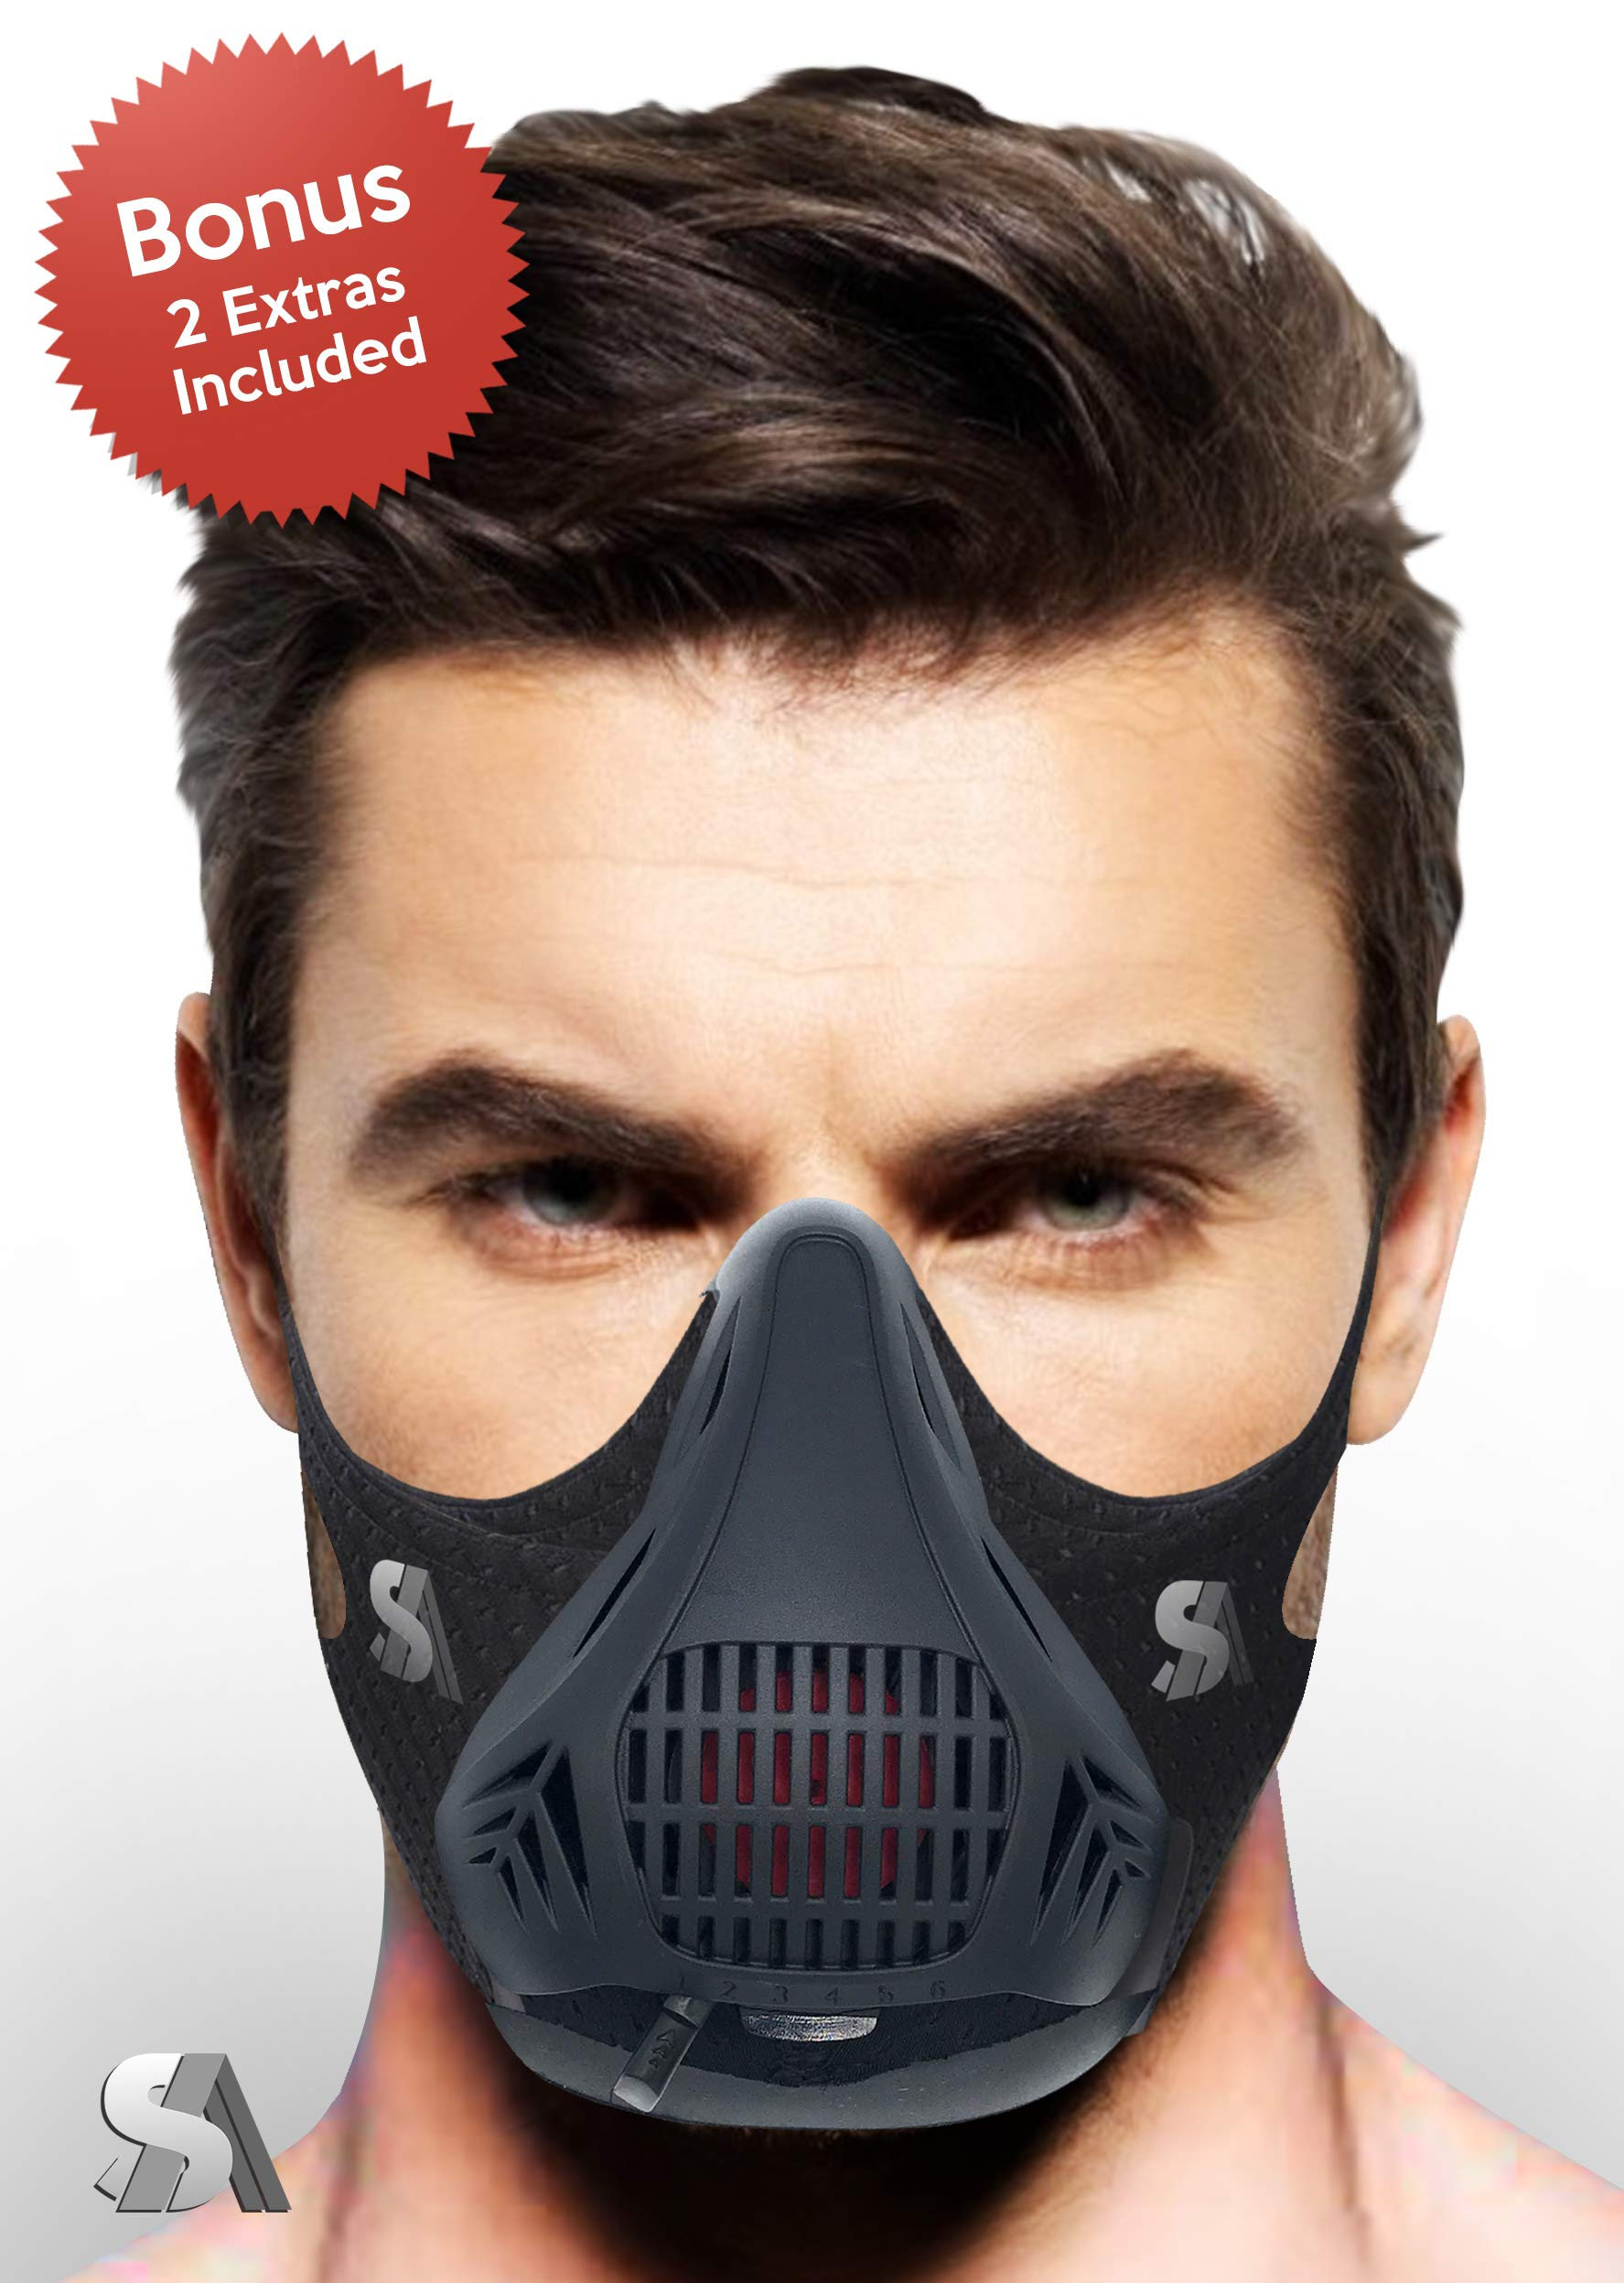 Workout Mask | Fitness Training Mask | Endurance Mask | Elevation Training | Gym, Running, Exercising Mask and Cardio Mask | 6 Levels of Resistance | BONUS Extra Sleeve and Hard Case Included